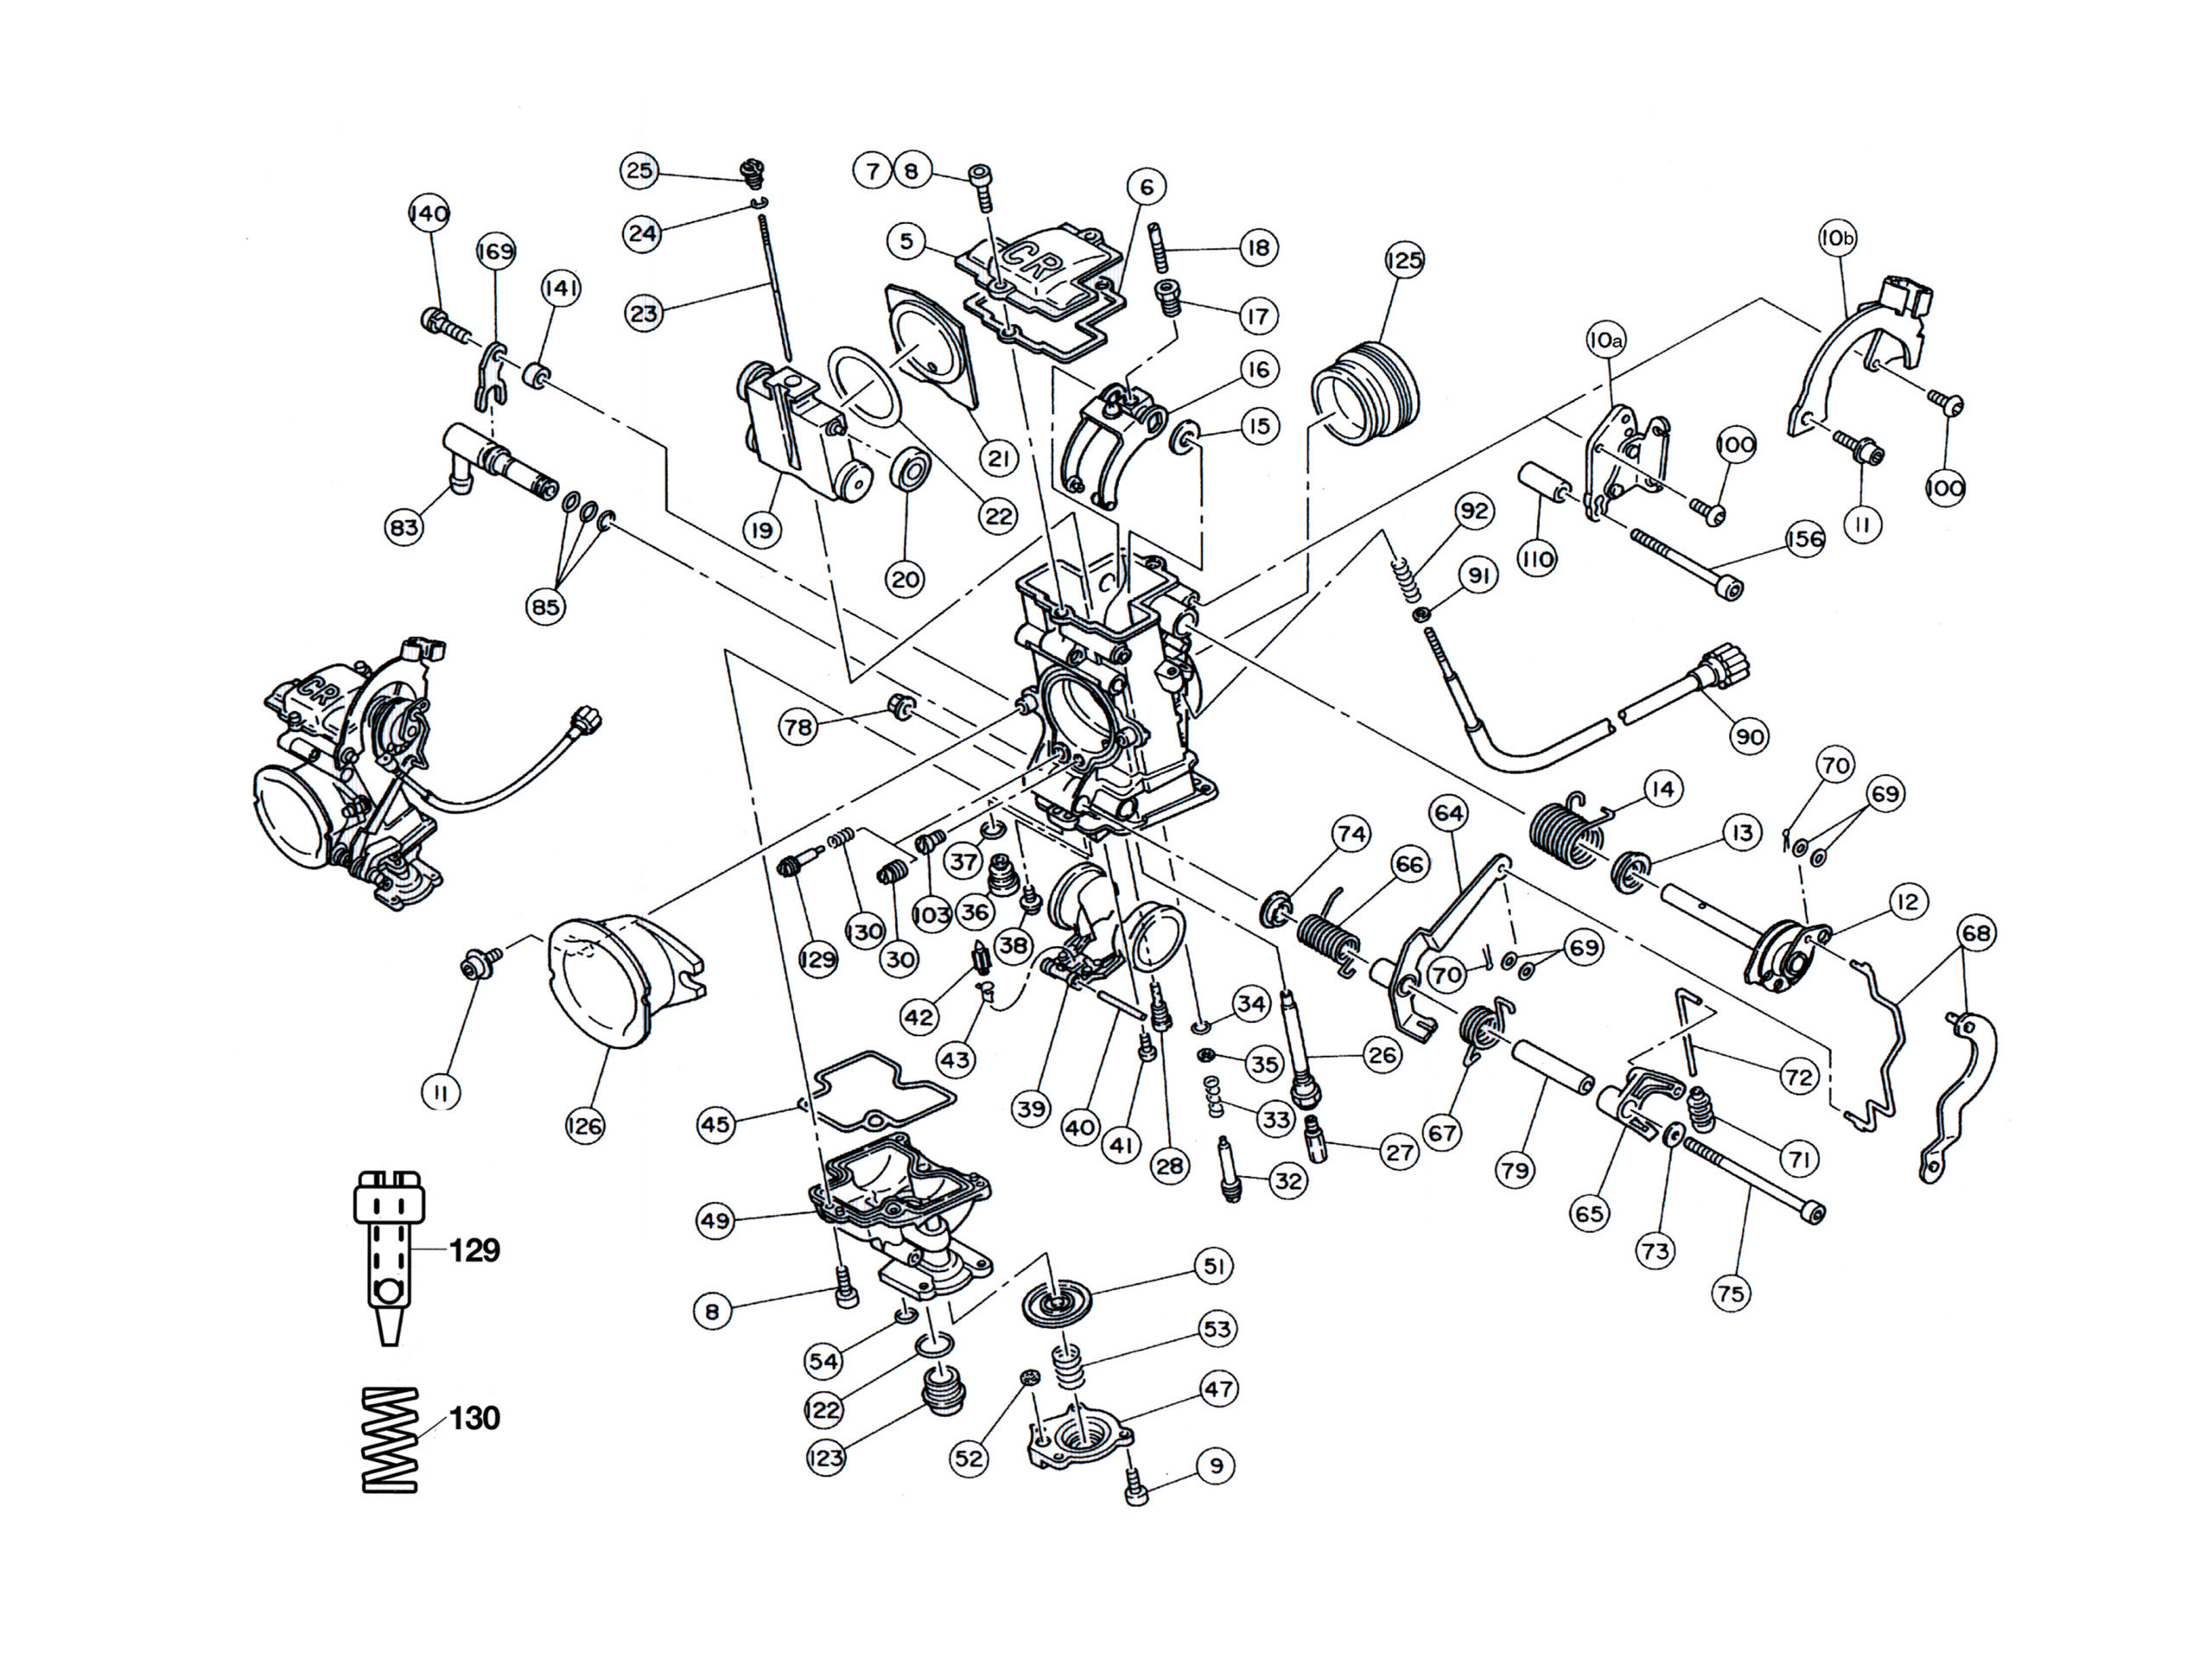 Keihin Fcr Flatslide Single Carburetor Parts Diagram Frank Mxparts on Keihin Carburetor Diagram